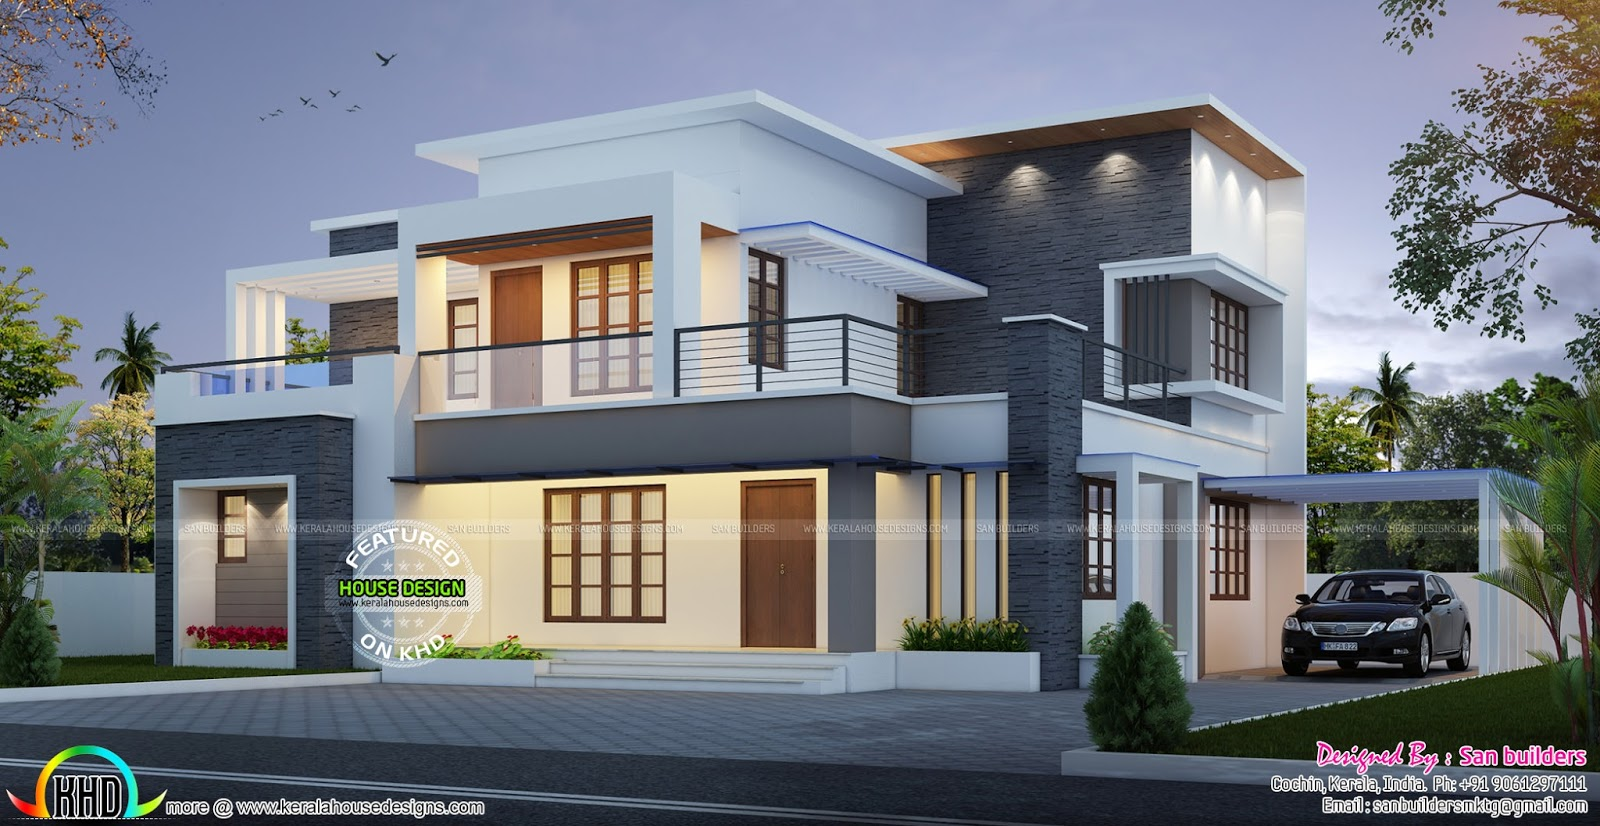 House plan and elevation by san builders kerala home for New model contemporary house